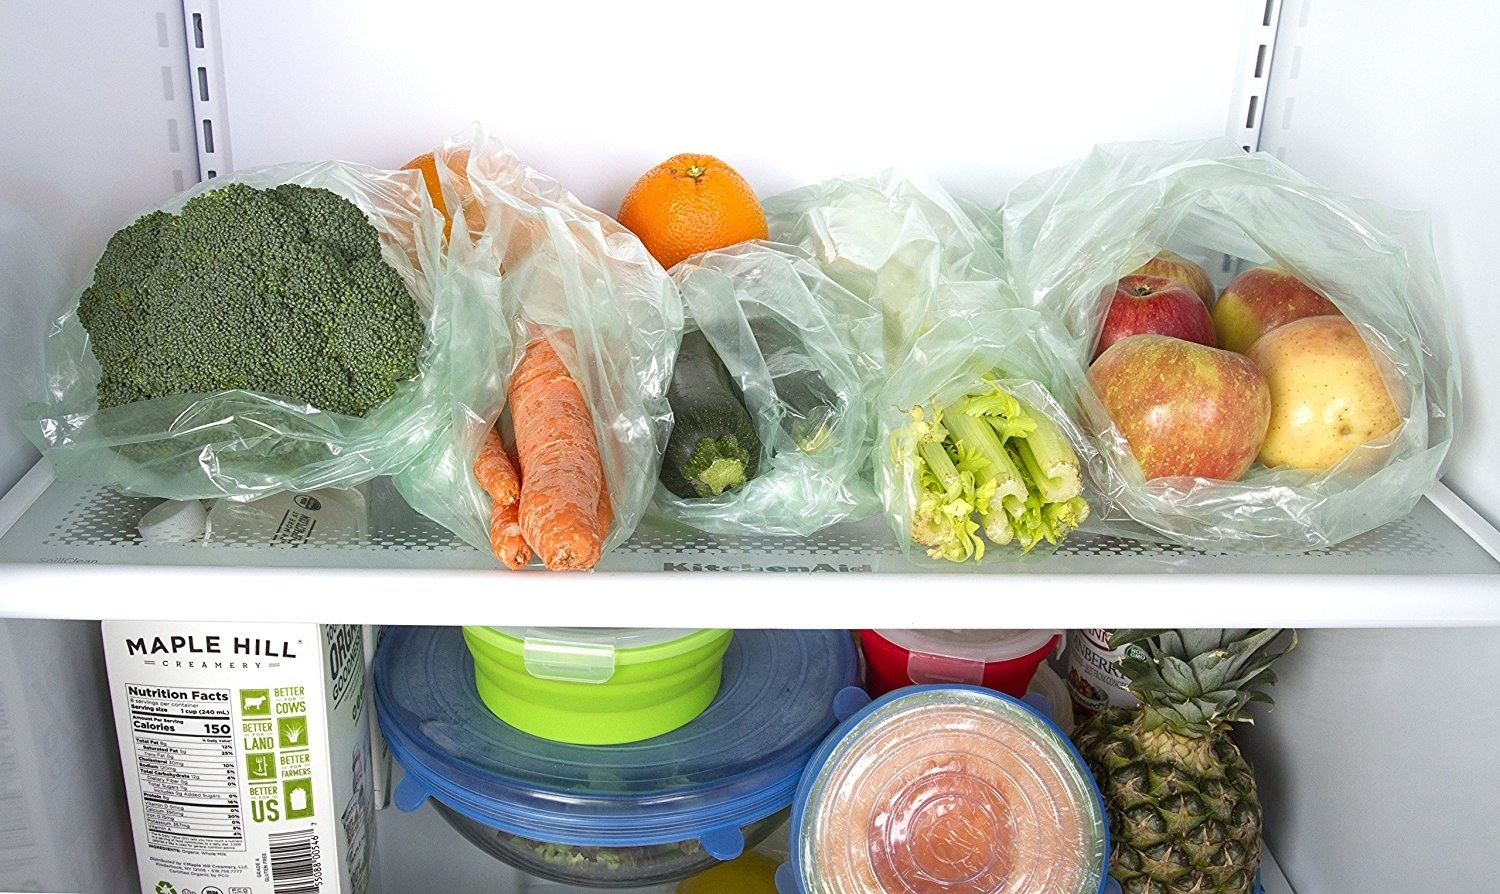 A fridge shelf with produce in the green-tinted bags